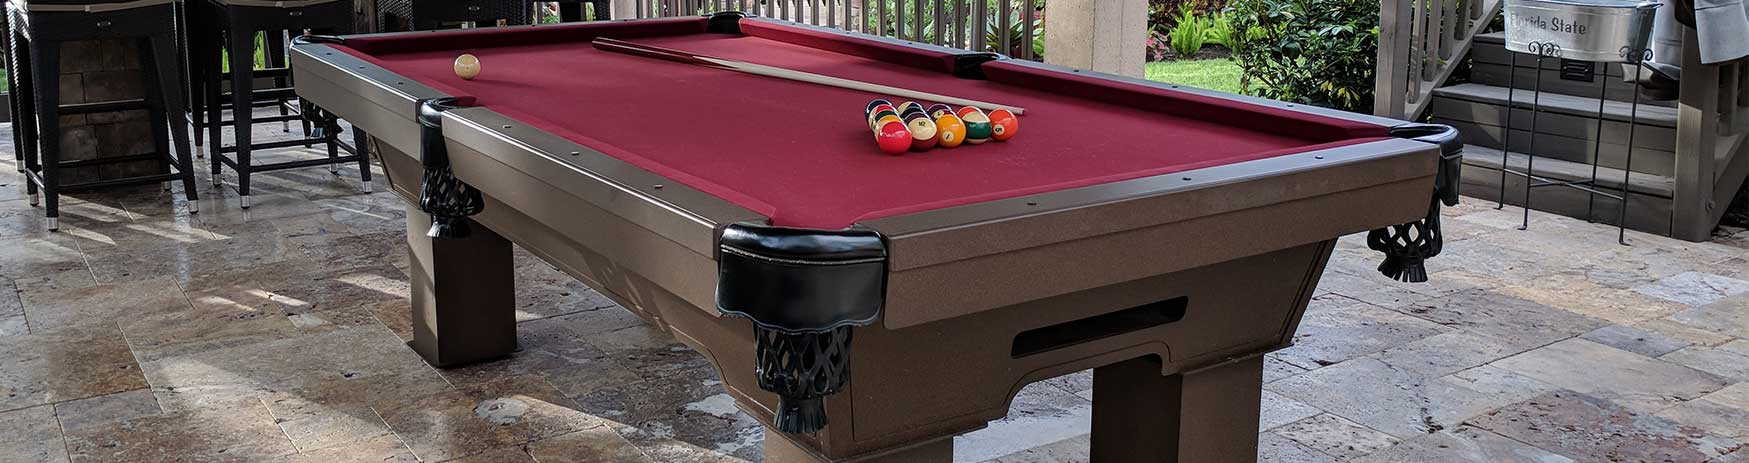 All Weather Billiards & Games is now R&R Outdoors | Outdoor Pool Tables